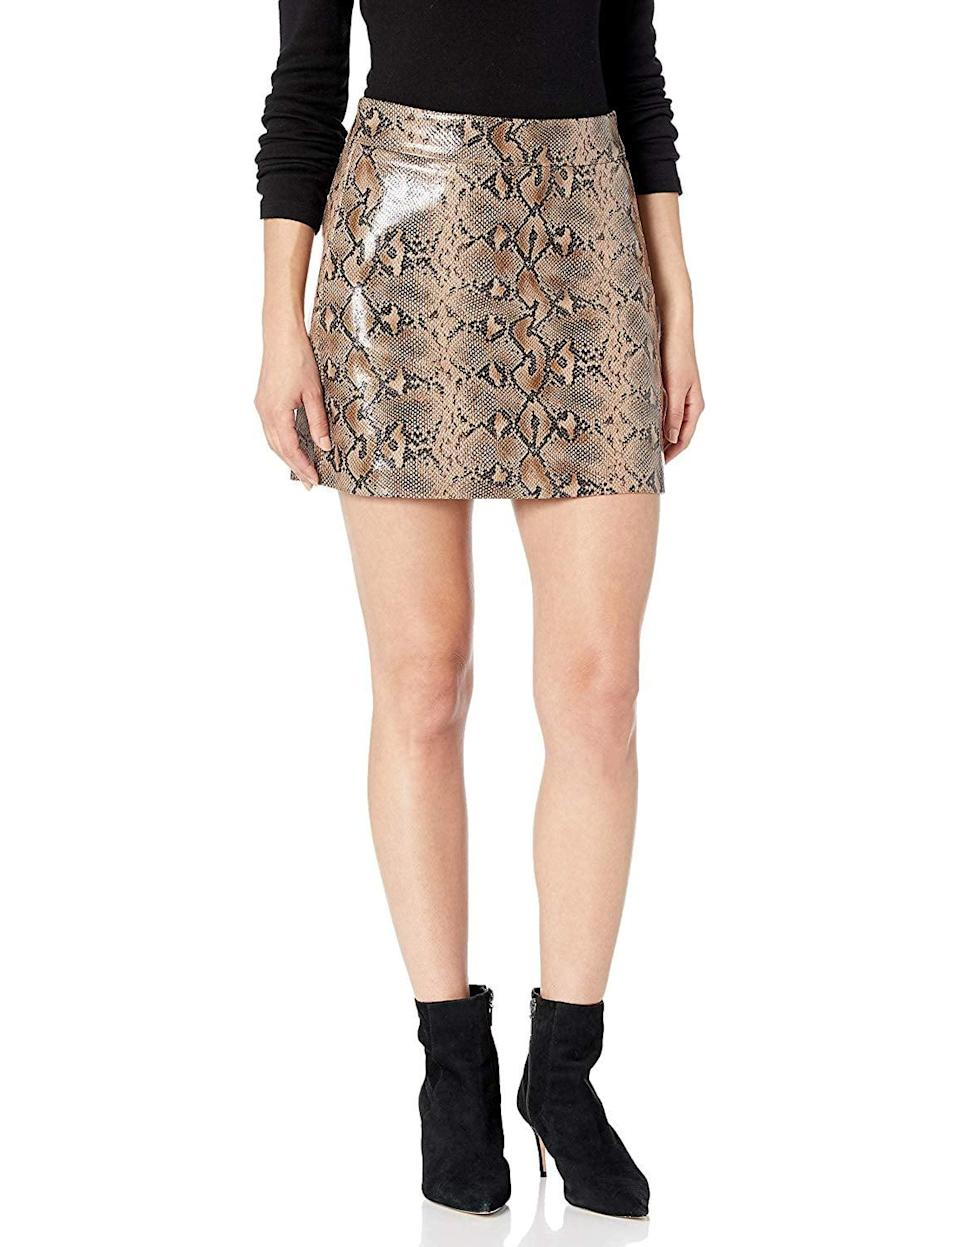 """<p>You'll be surprised by how often you end up wearing this cute <a href=""""https://www.popsugar.com/buy/BlankNYC-Vegan-Leather-Miniskirt-506609?p_name=BlankNYC%20Vegan%20Leather%20Miniskirt&retailer=amazon.com&pid=506609&price=82&evar1=fab%3Aus&evar9=46804763&evar98=https%3A%2F%2Fwww.popsugar.com%2Ffashion%2Fphoto-gallery%2F46804763%2Fimage%2F46804773%2FVegan-Leather-Skirt&list1=shopping%2Cfall%20fashion%2Camazon%2Cfall&prop13=mobile&pdata=1"""" class=""""link rapid-noclick-resp"""" rel=""""nofollow noopener"""" target=""""_blank"""" data-ylk=""""slk:BlankNYC Vegan Leather Miniskirt"""">BlankNYC Vegan Leather Miniskirt</a> ($82). But you shouldn't be, because it's sexy, versatile, and so cool.</p>"""